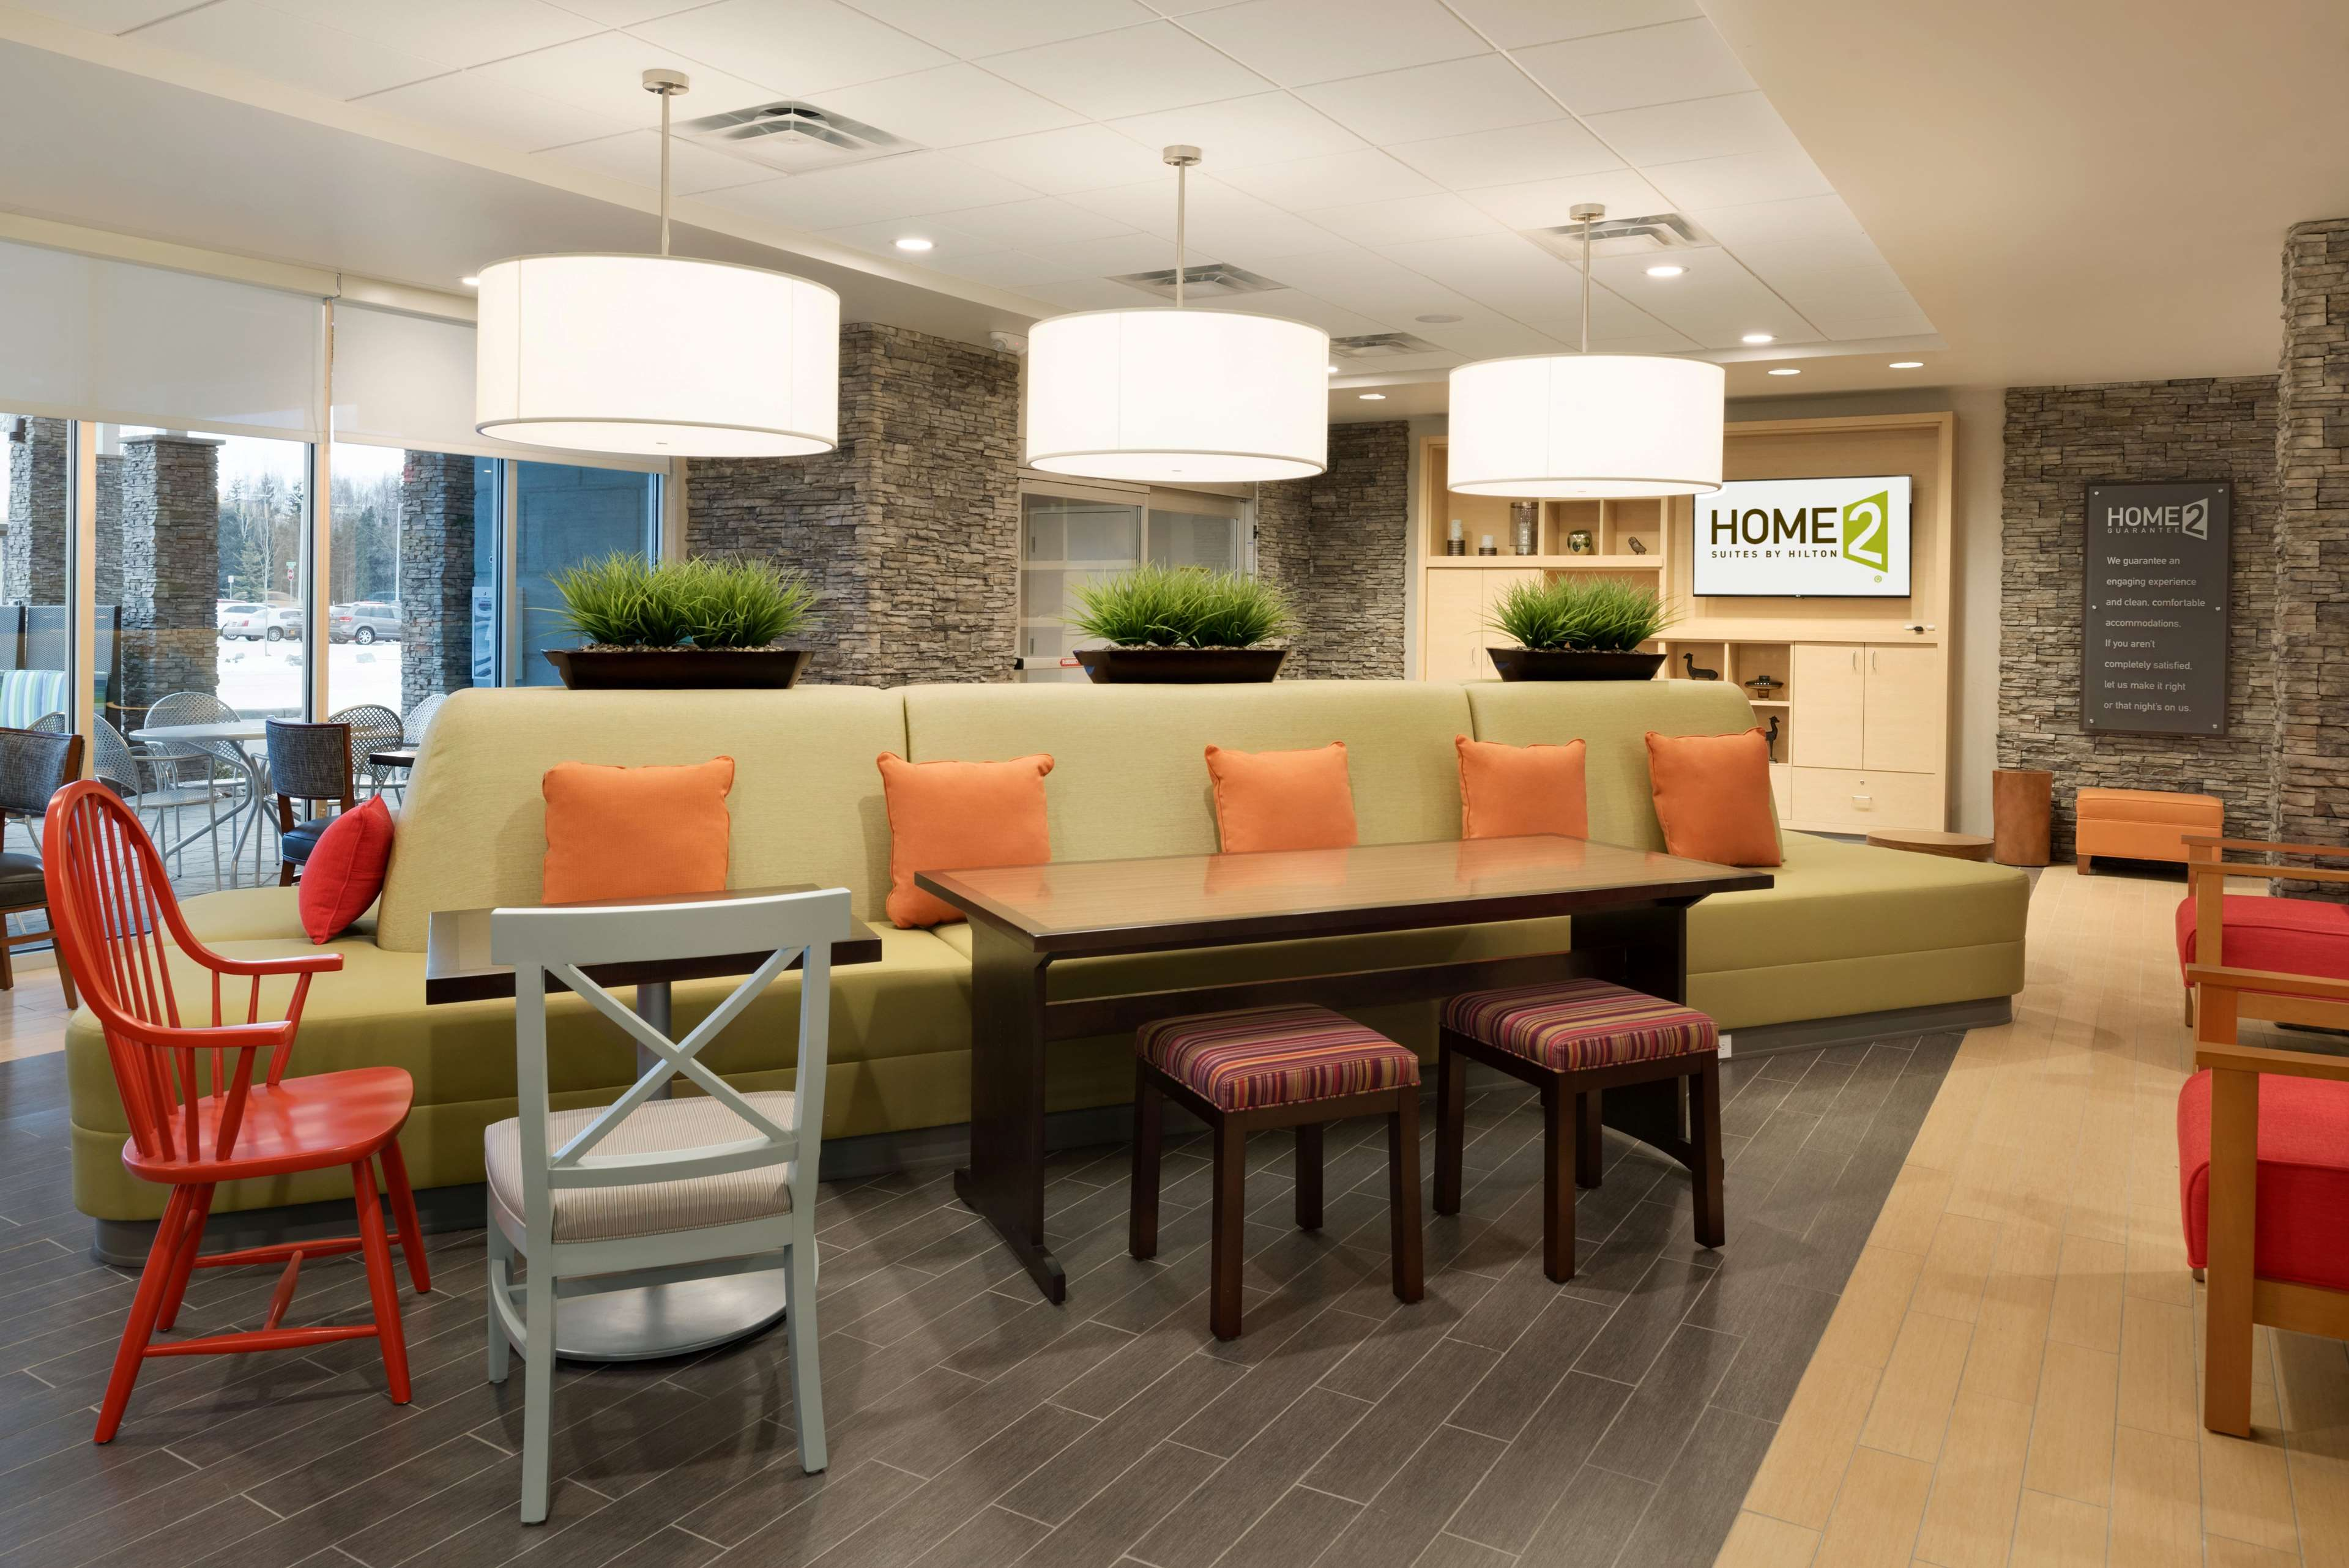 Home2 Suites by Hilton Anchorage/Midtown image 5